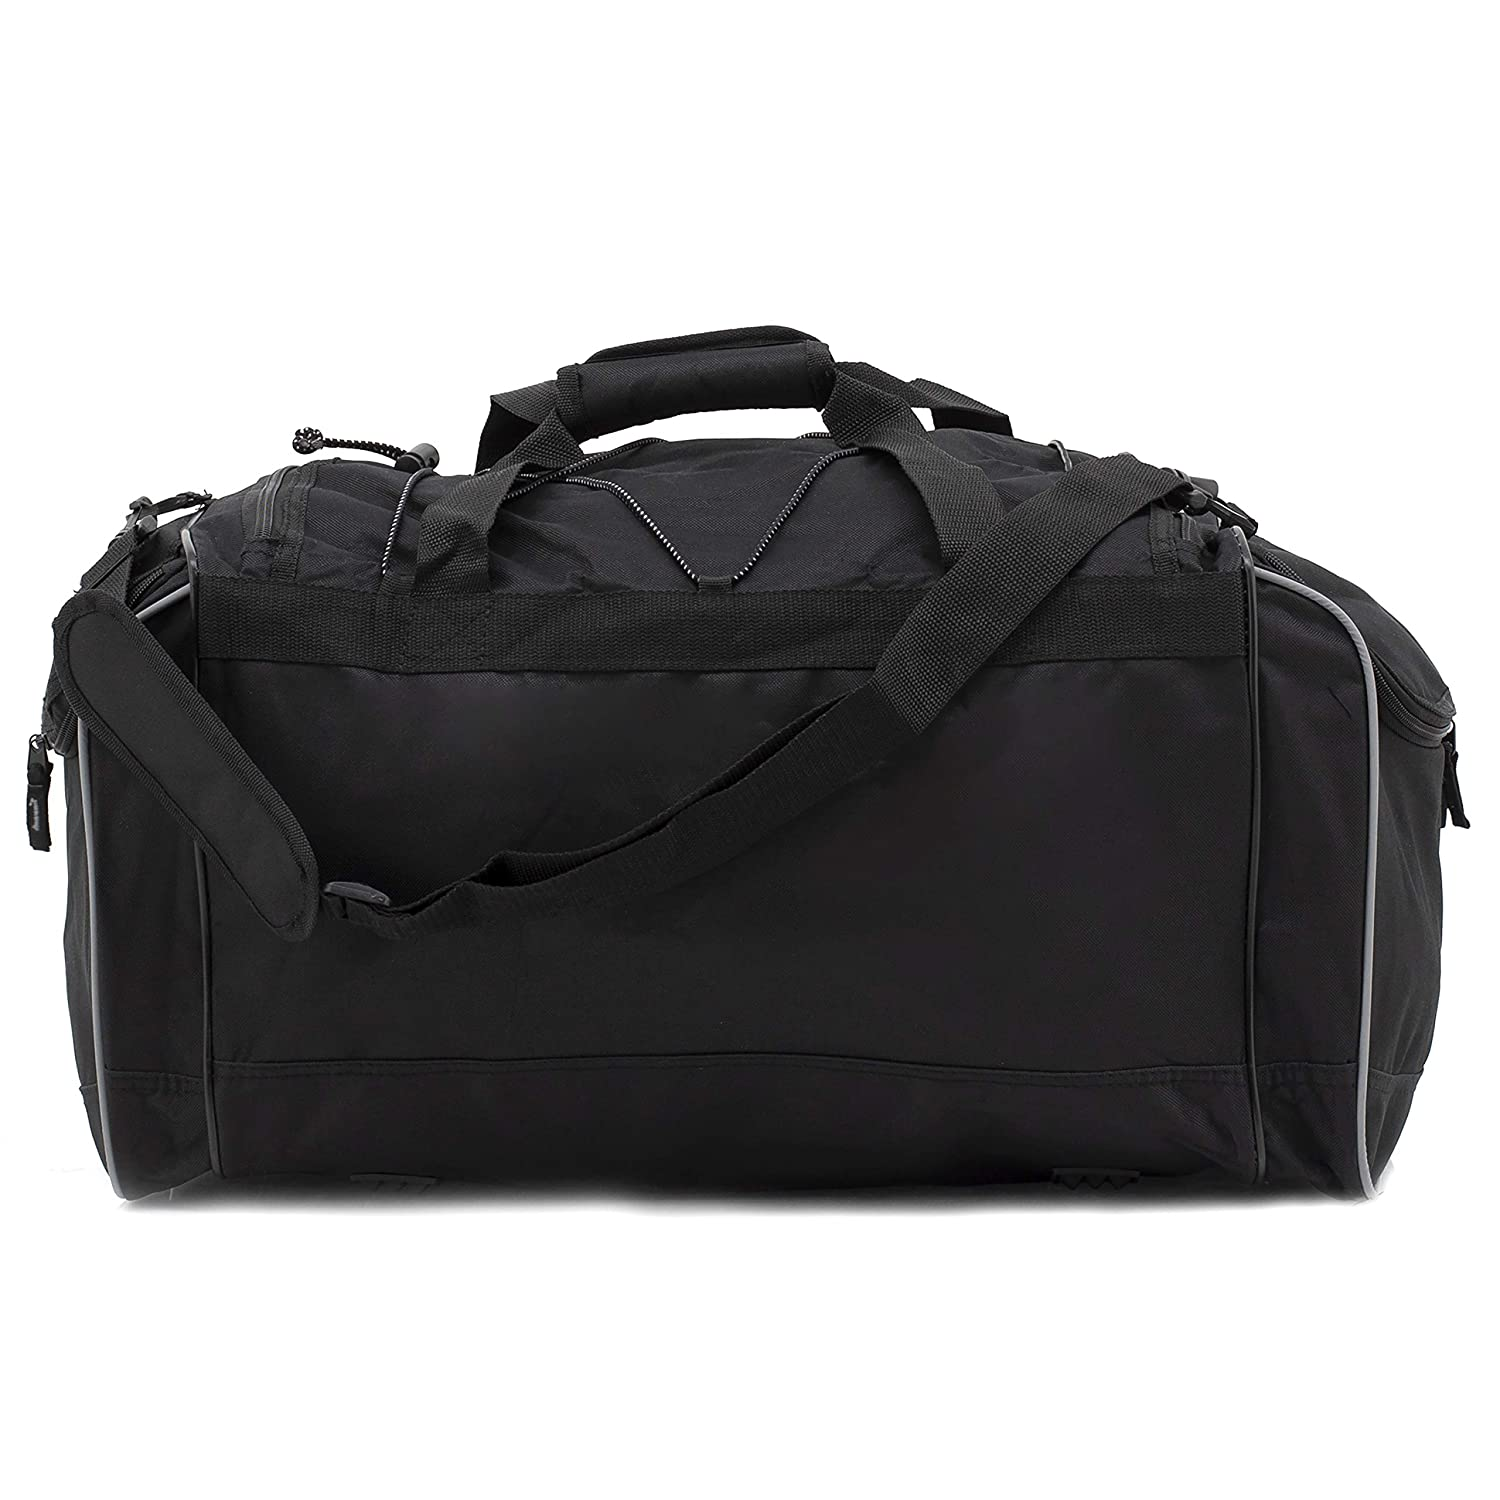 Travelers Club 24 ADVENTURE Travel and Outdoor Duffel